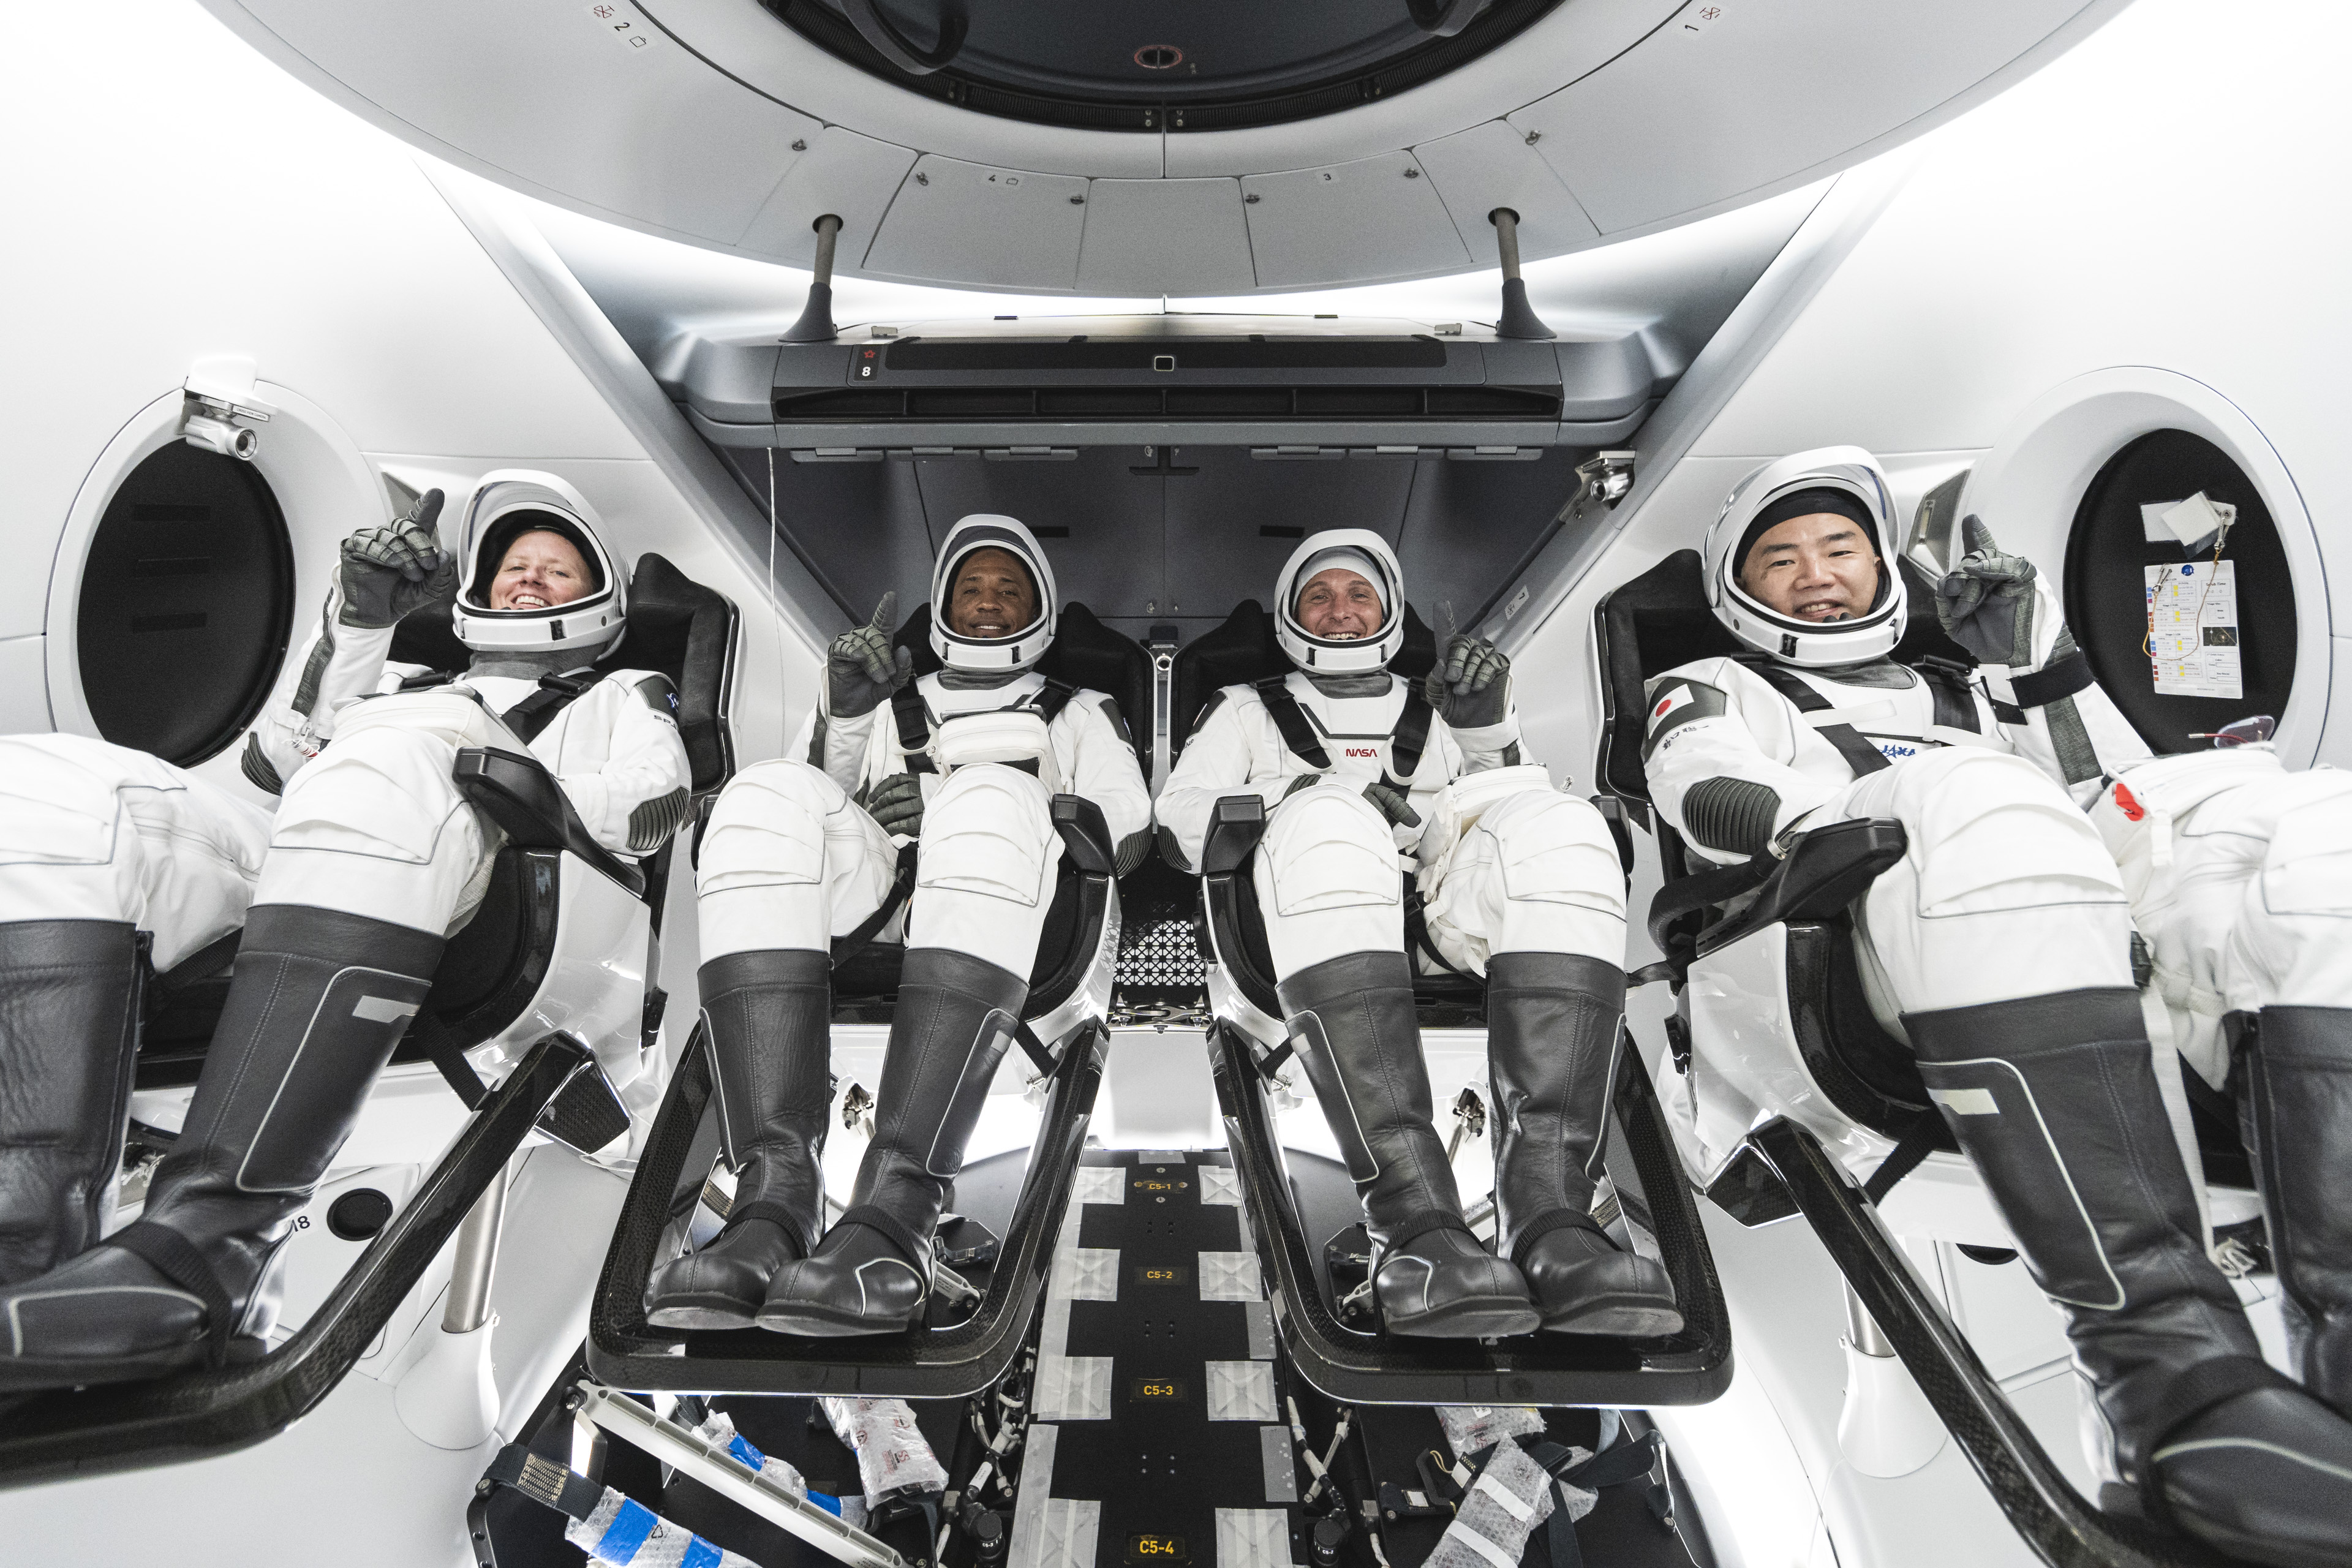 SpaceX's Crew-1 astronaut launch for NASA: Live updates